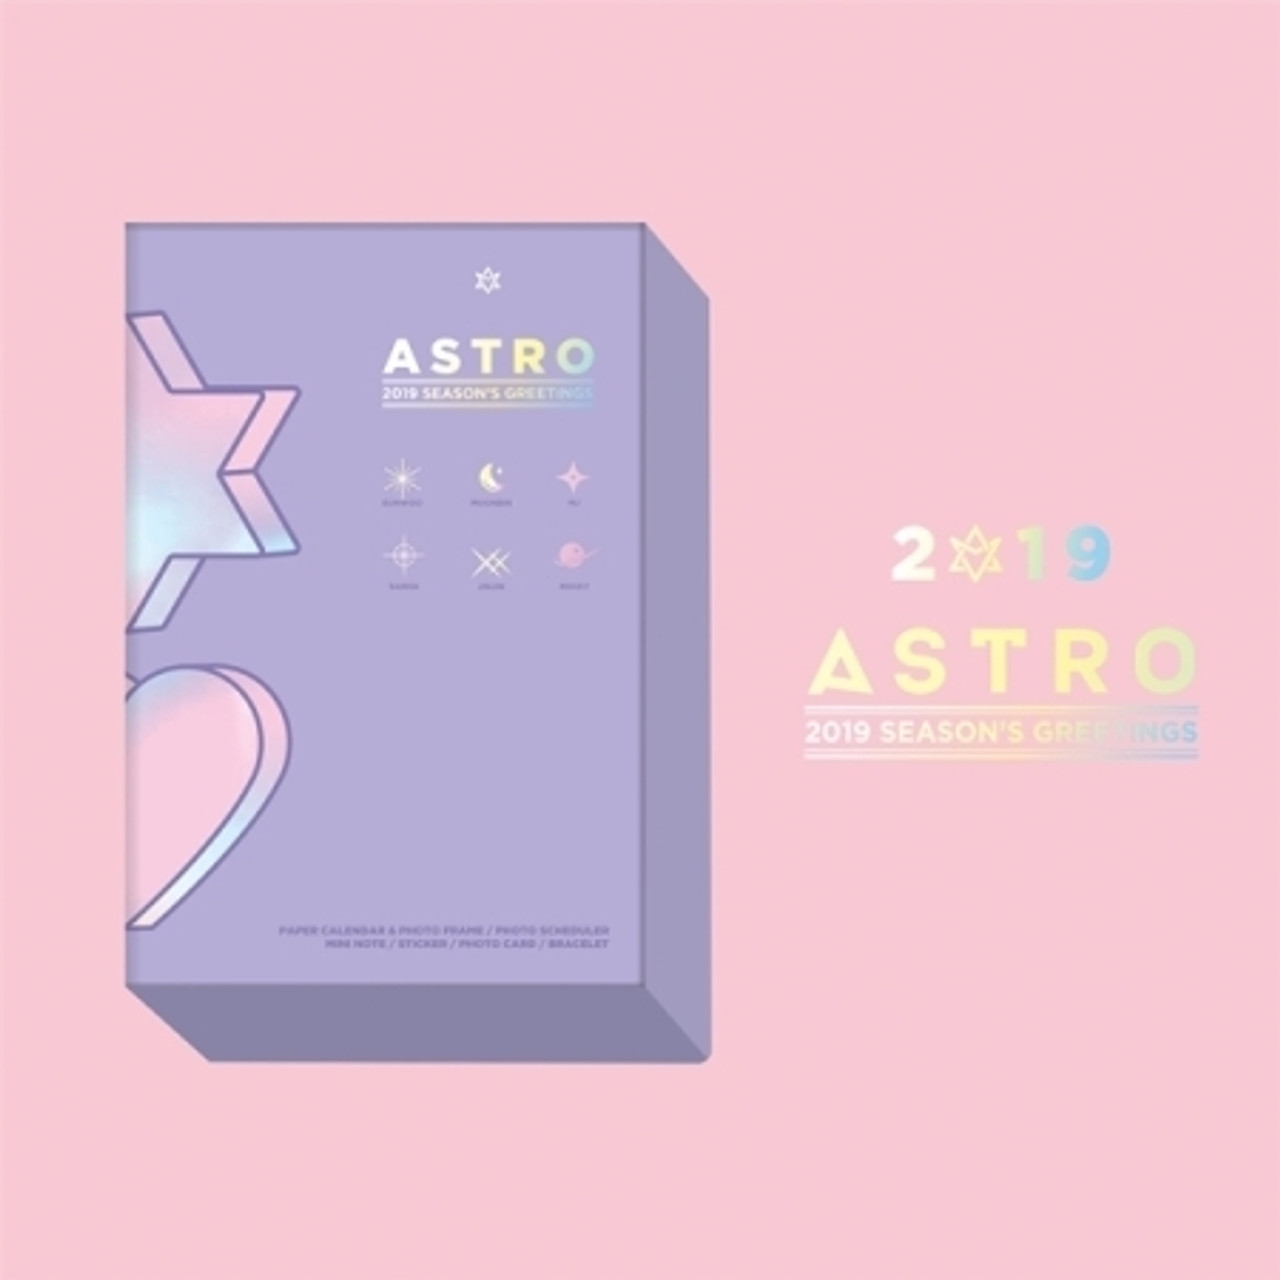 ASTRO - 2019 SEASONS GREETINGS [SUNNY DAY Ver.]poster